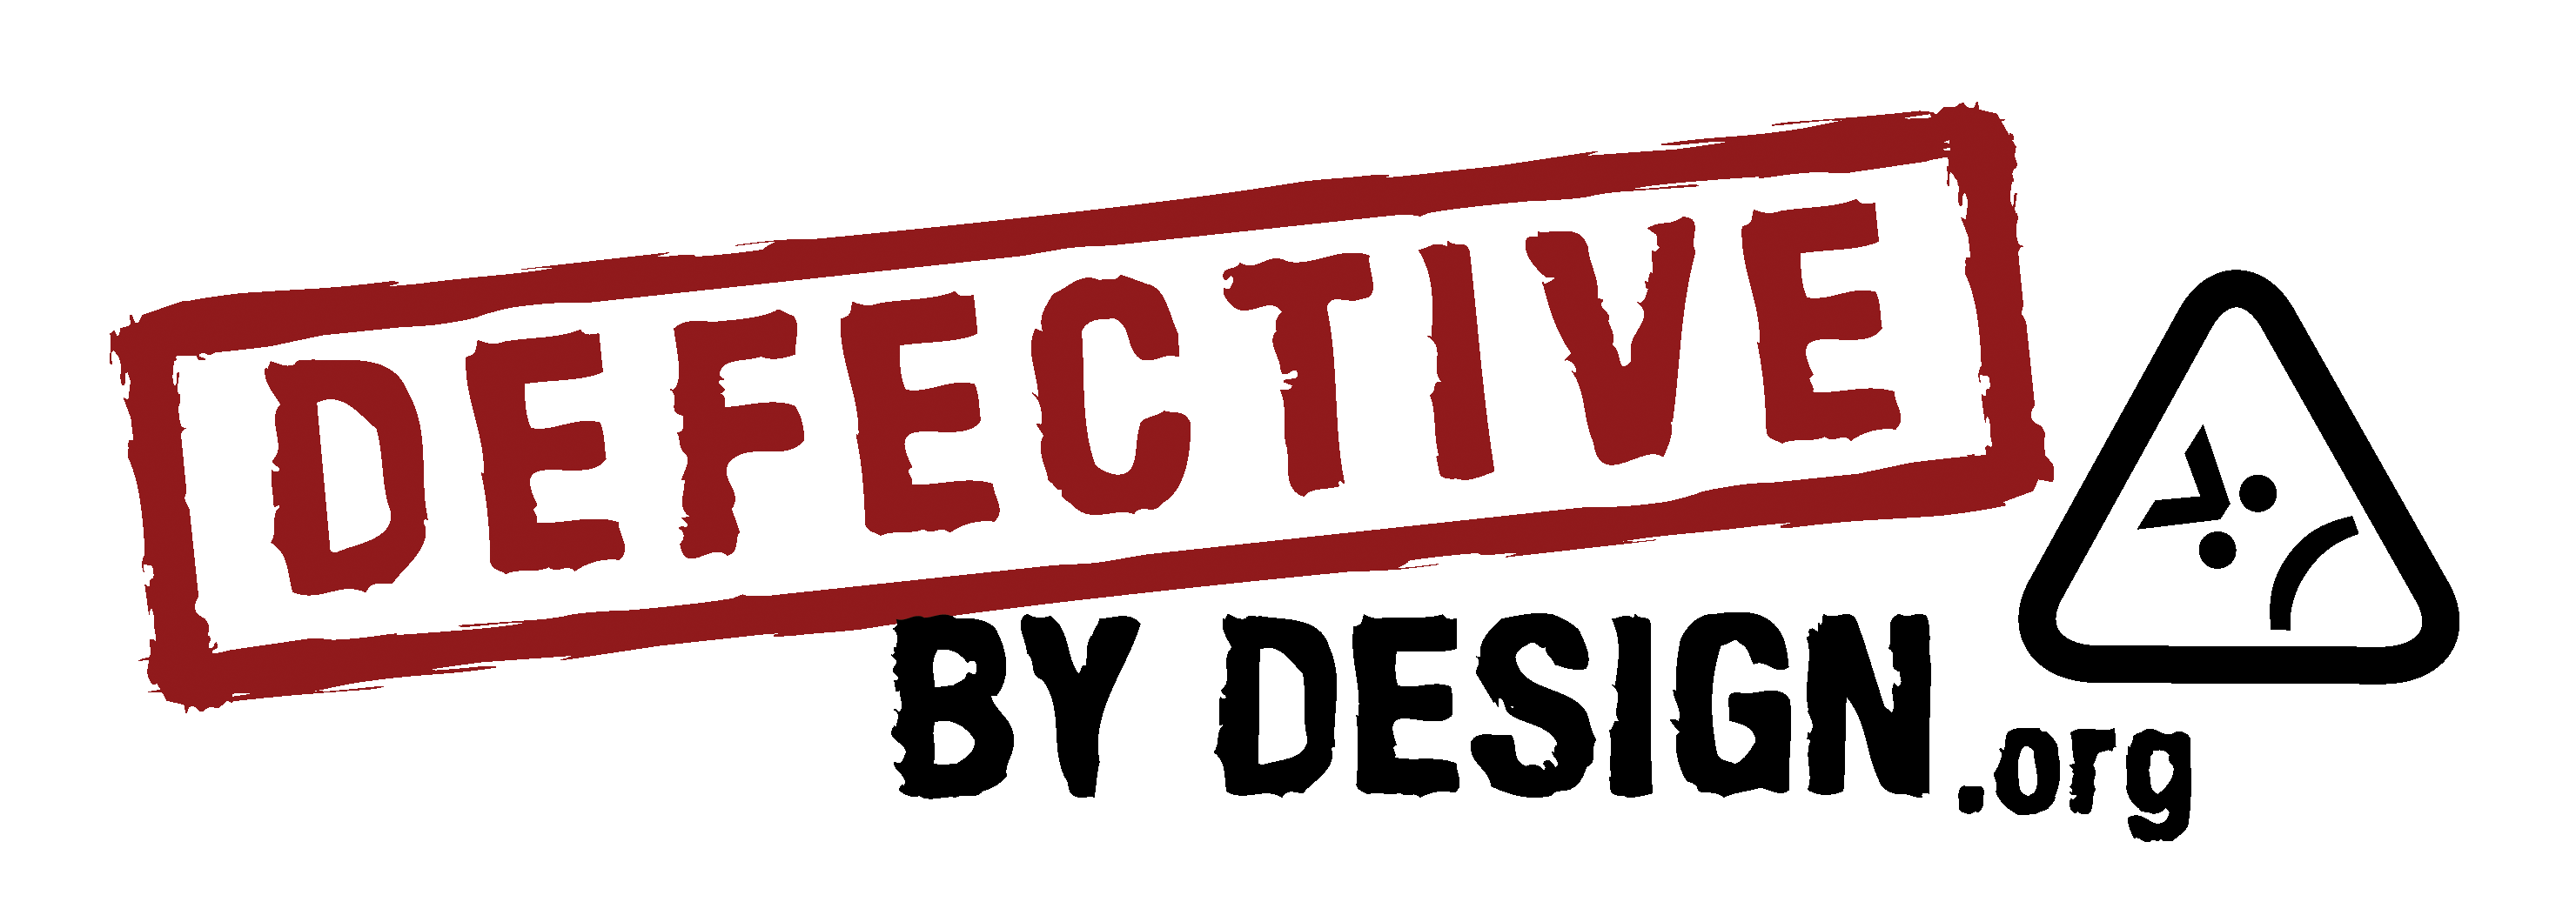 anti drm materials defective by design